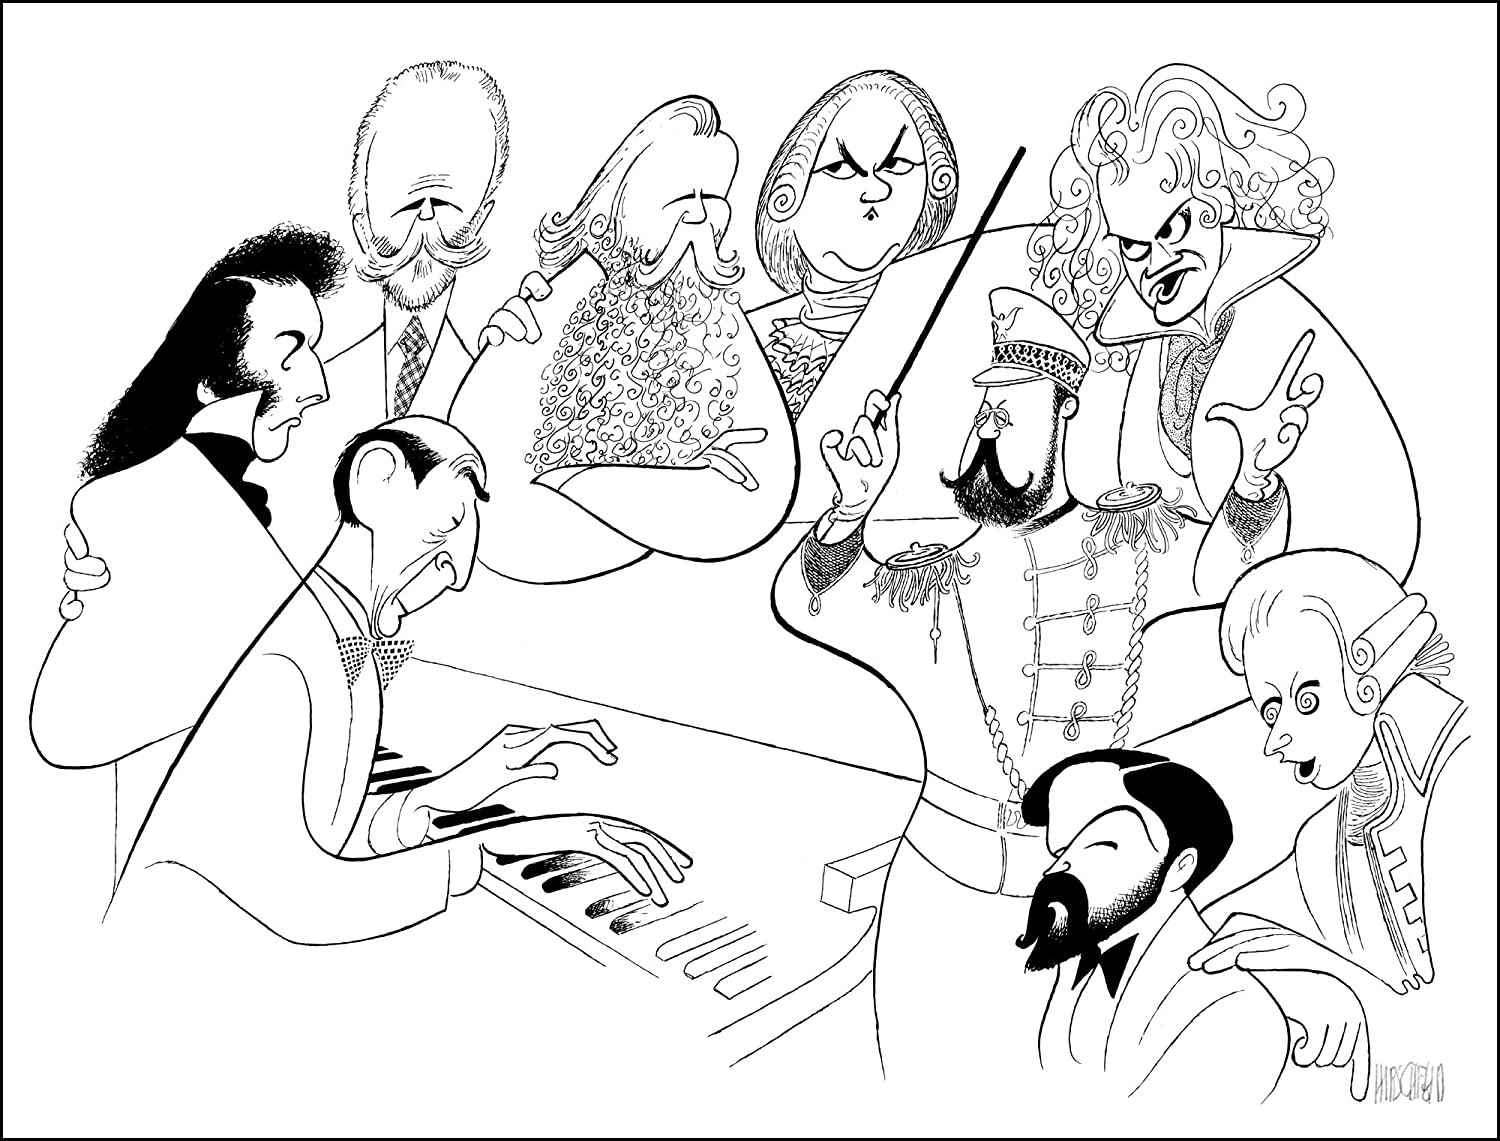 AL HIRSCHFELD'S: HOROWITZ & FRIENDS, Hand Signed by Al HIrschfeld, C of A, Ltd Ed, VLADIMIR HOROWITZ, CHOPIN, TCHAIKOVSKY, BRAHMS, BACH, BEETHOVEN, MOZART, DEBUSSY, and JOHN PHILIP SOUSA AL HIRSCHFELD' S: HOROWITZ & FRIENDS New York